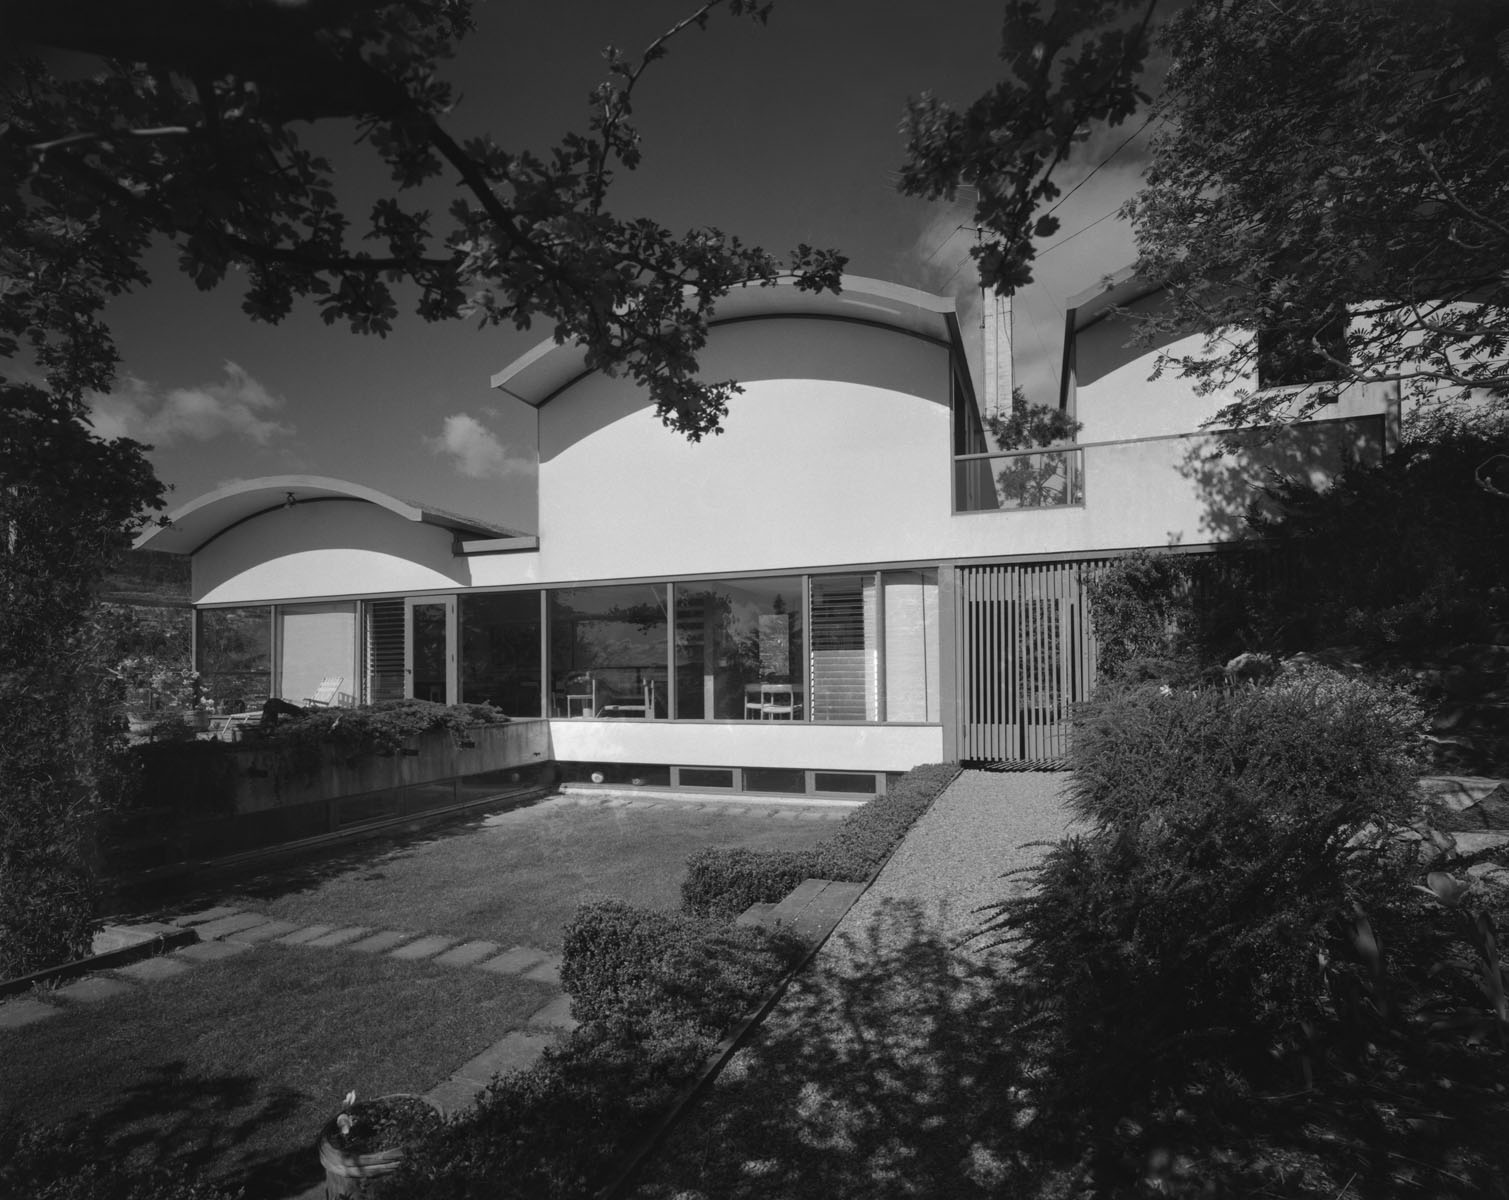 Gerson Residence, West Vancouver Wolfgang Gerson, Architect, 1958 Photograph by John Fulker, c. 1960 Courtesy of West Vancouver Museum.